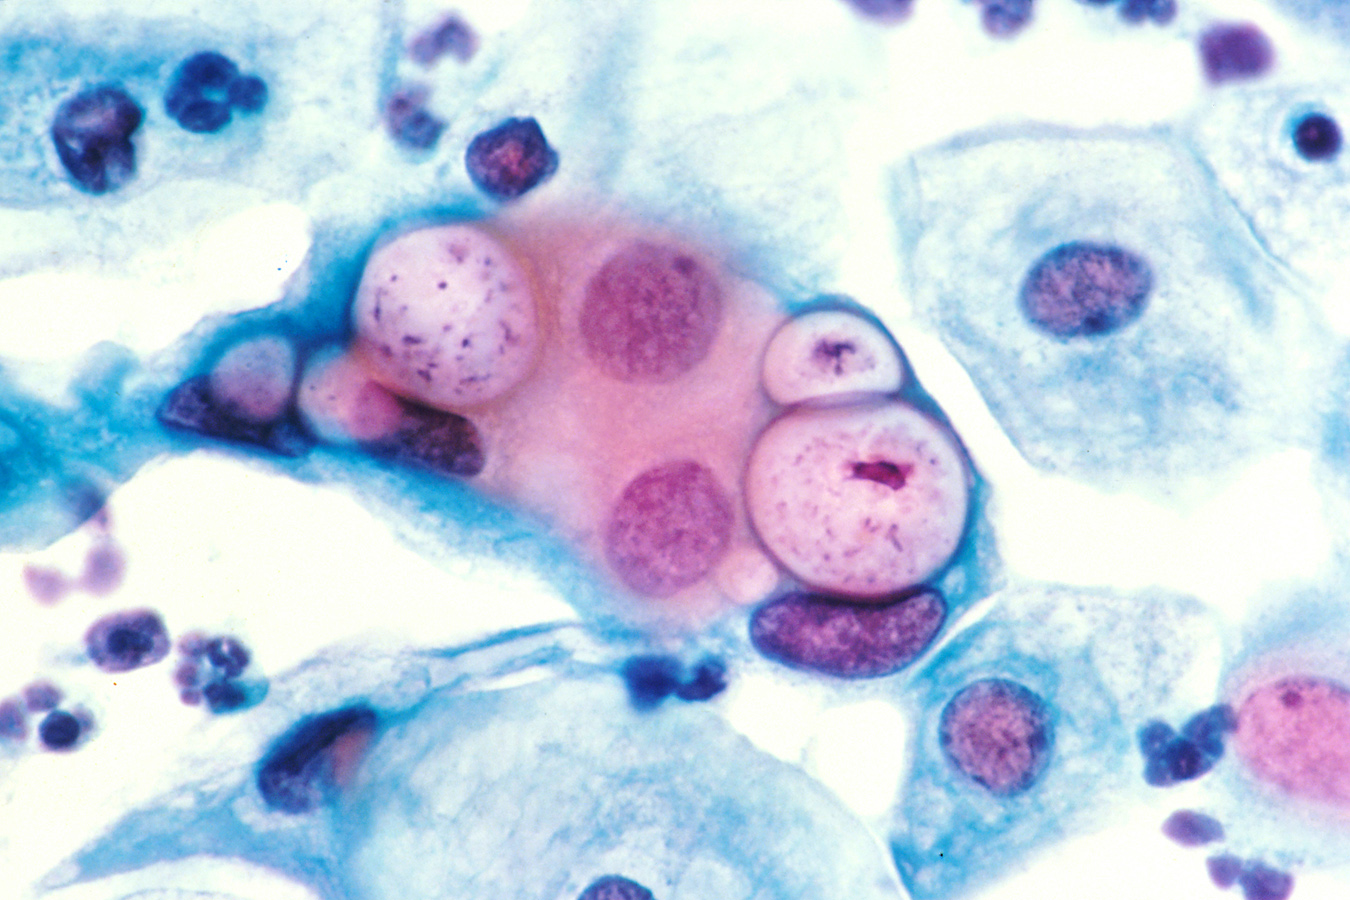 Description pap smear showing clamydia in the vacuoles 500x h e